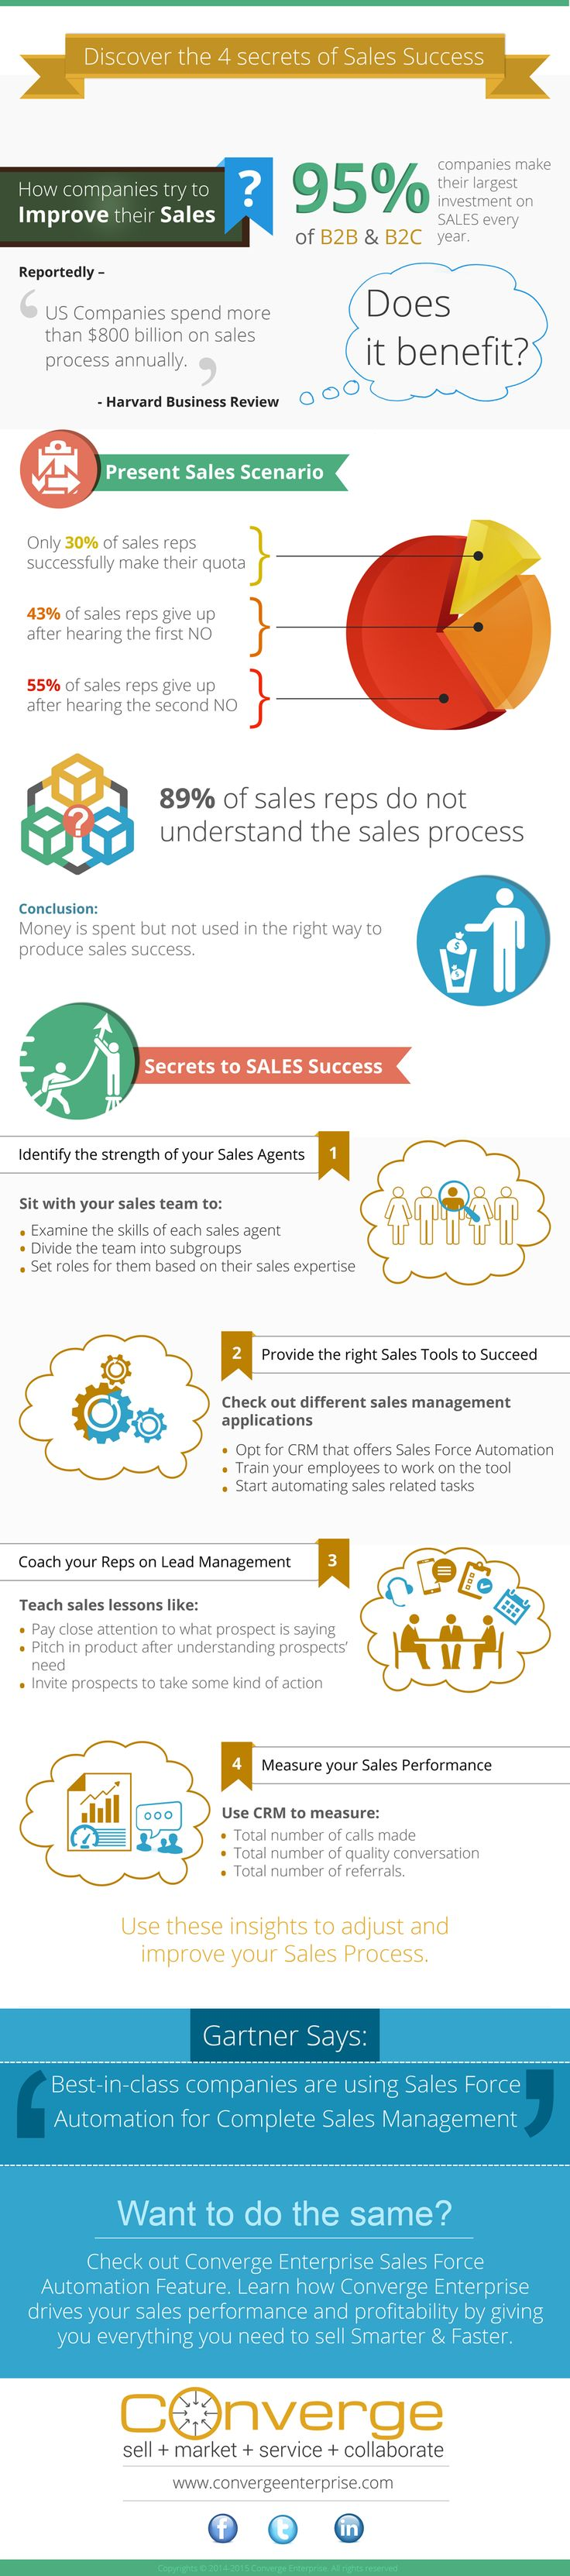 4 Secrets of Sales Success